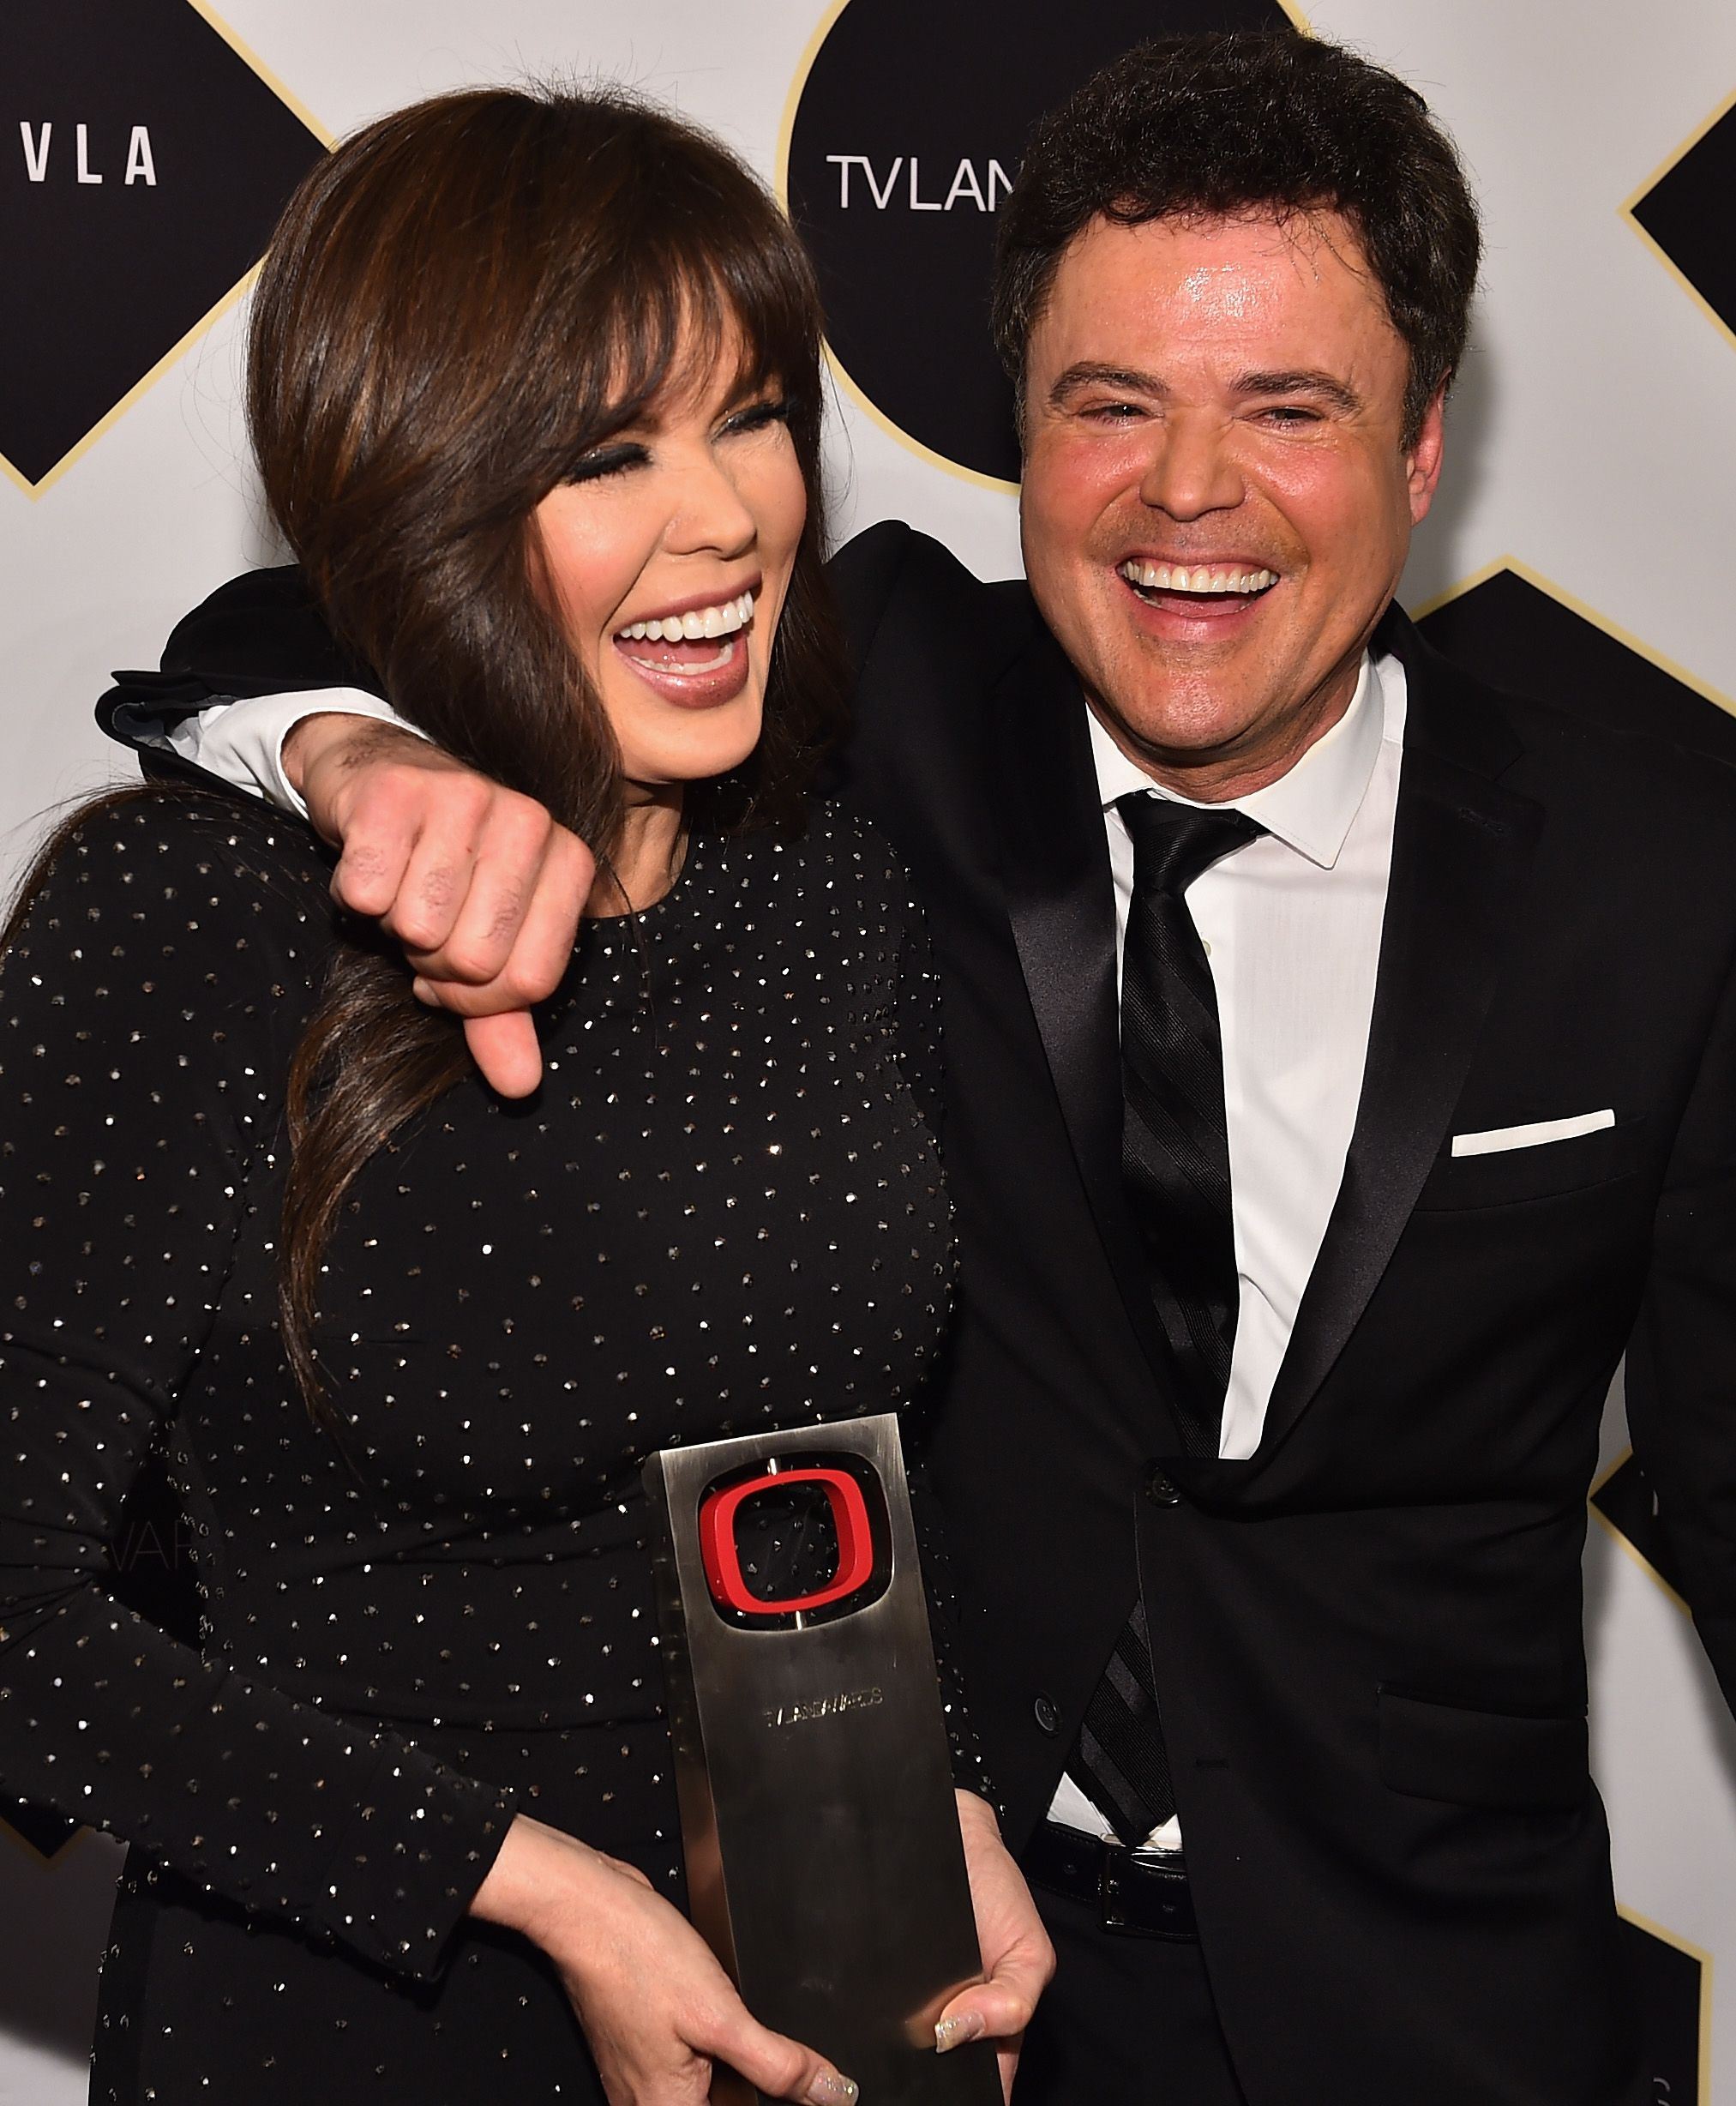 Marie Osmond and Donny Osmond with the Pop Culture Award during the 2015 TV Land Awards in Los Angeles | Source: Getty Images